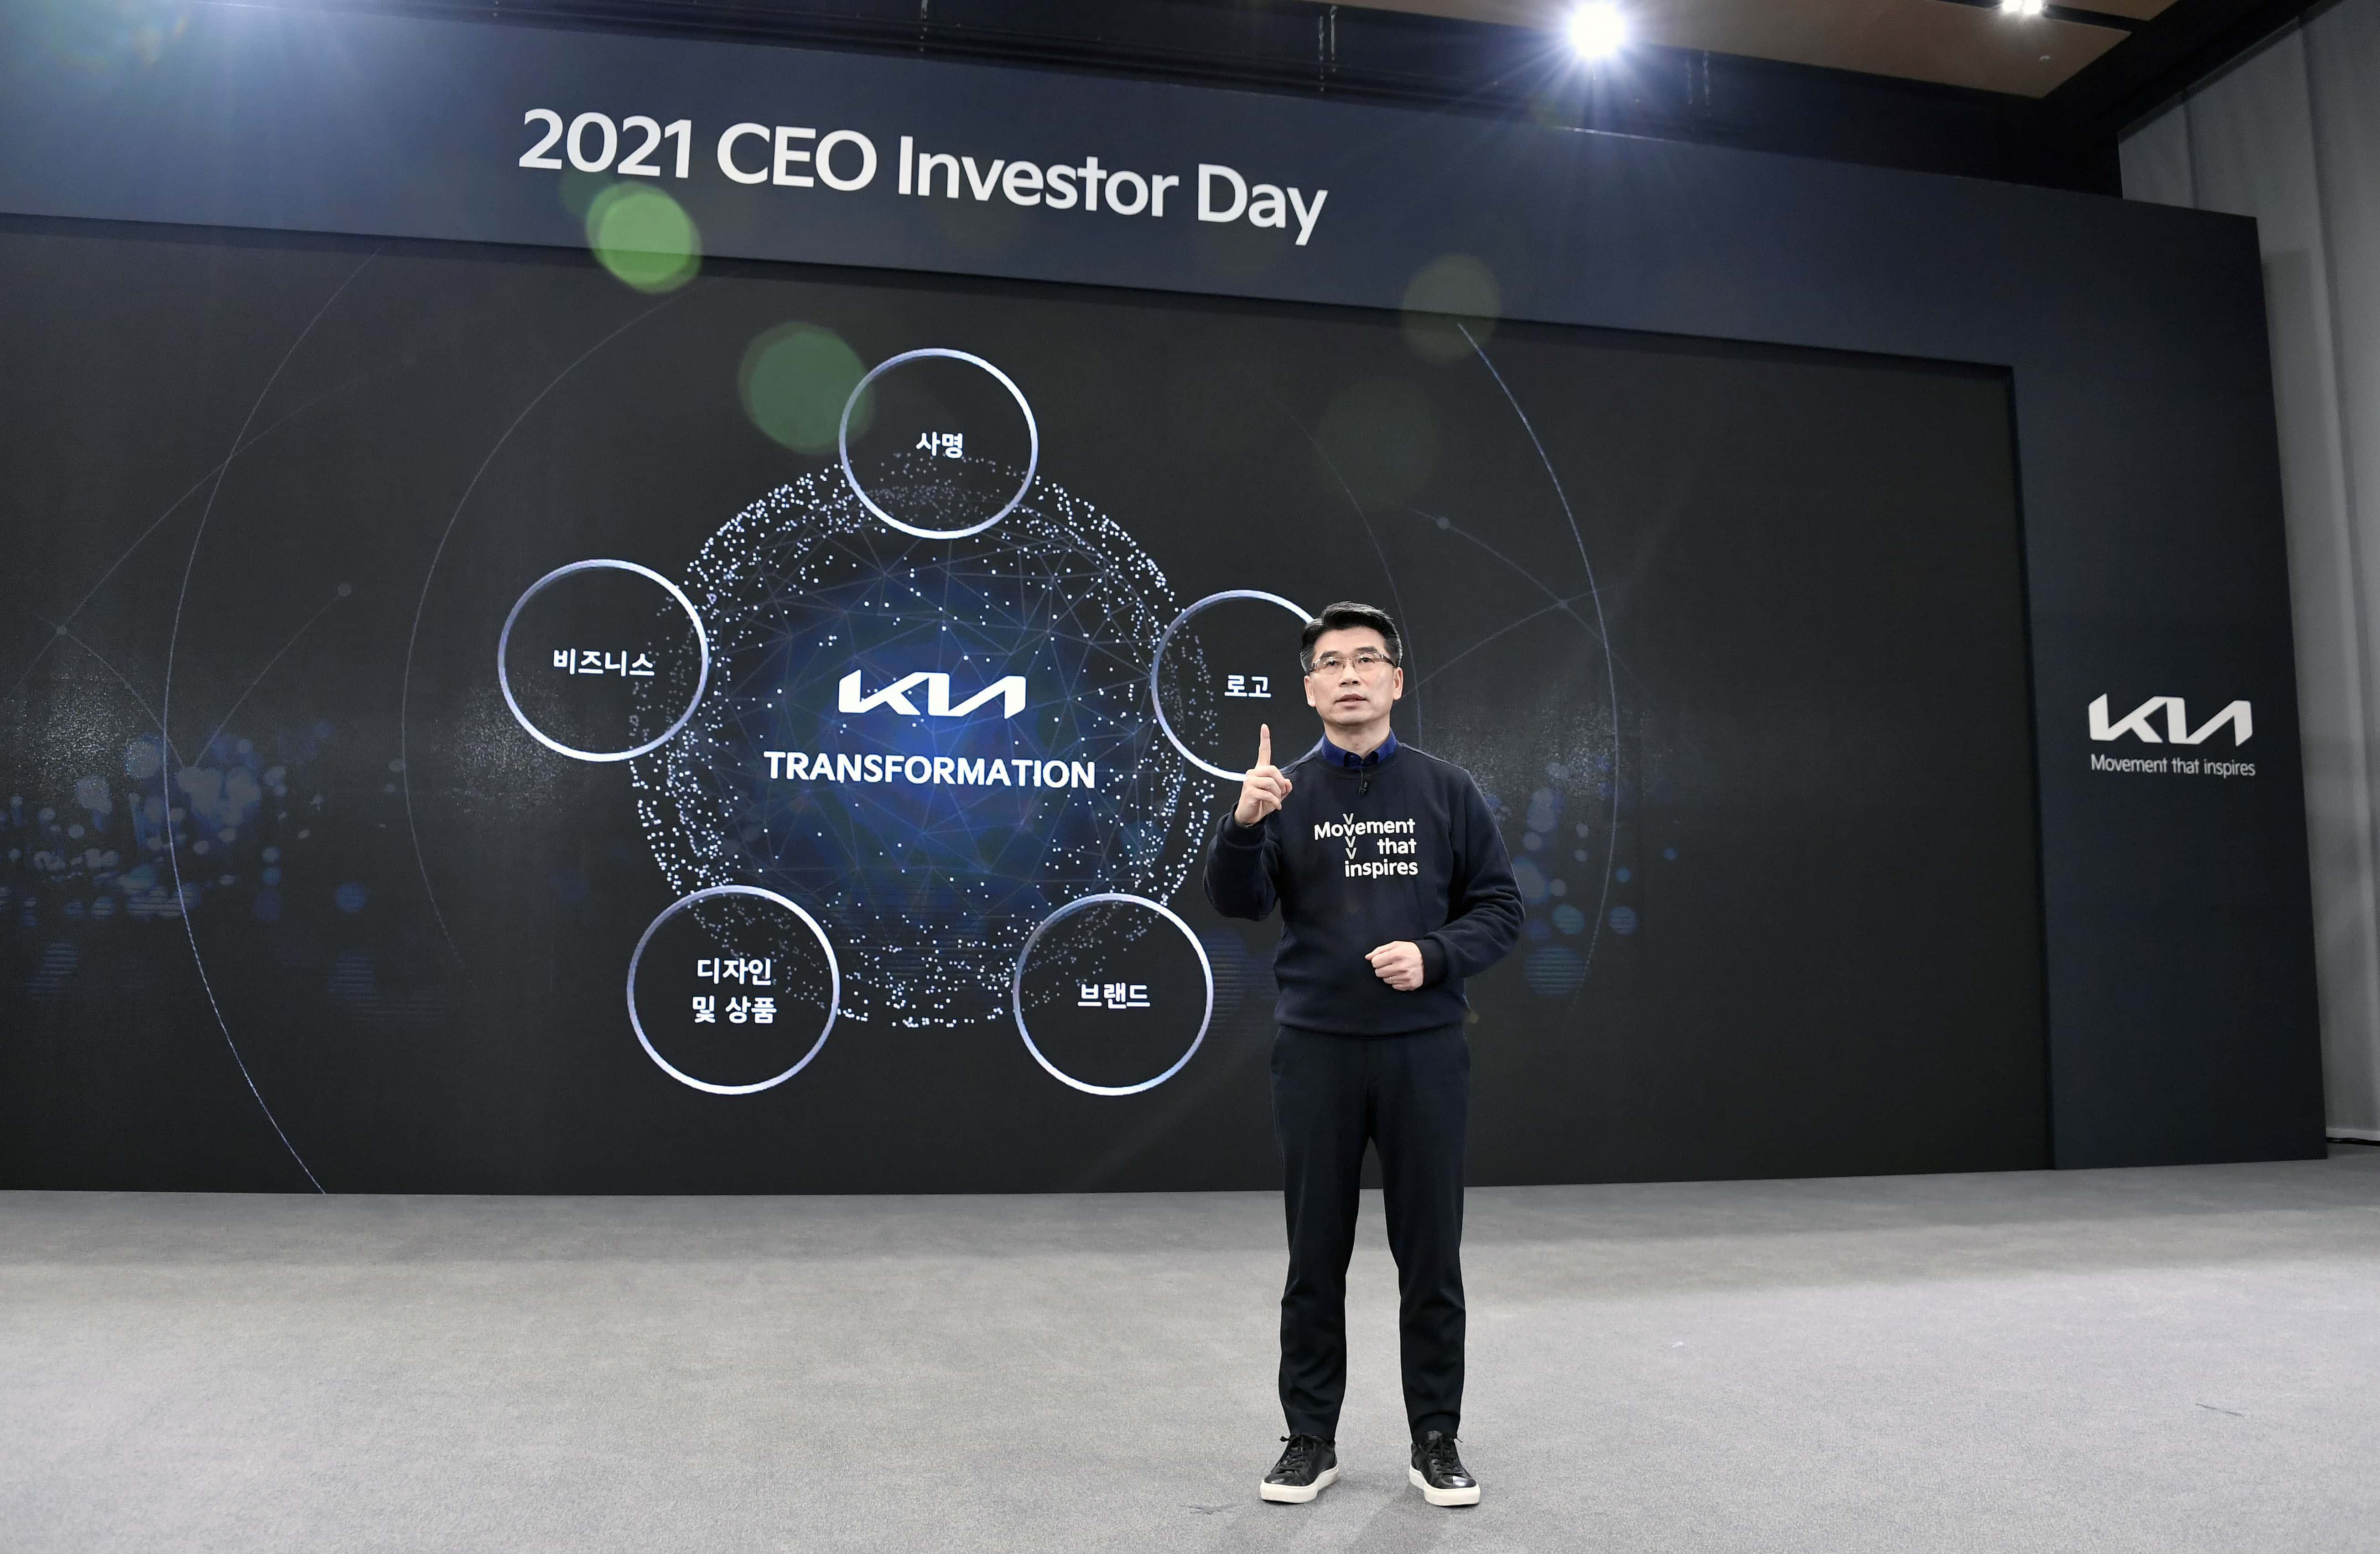 Kia unveils roadmap for transformation, focusing on EVs and mobility solutions